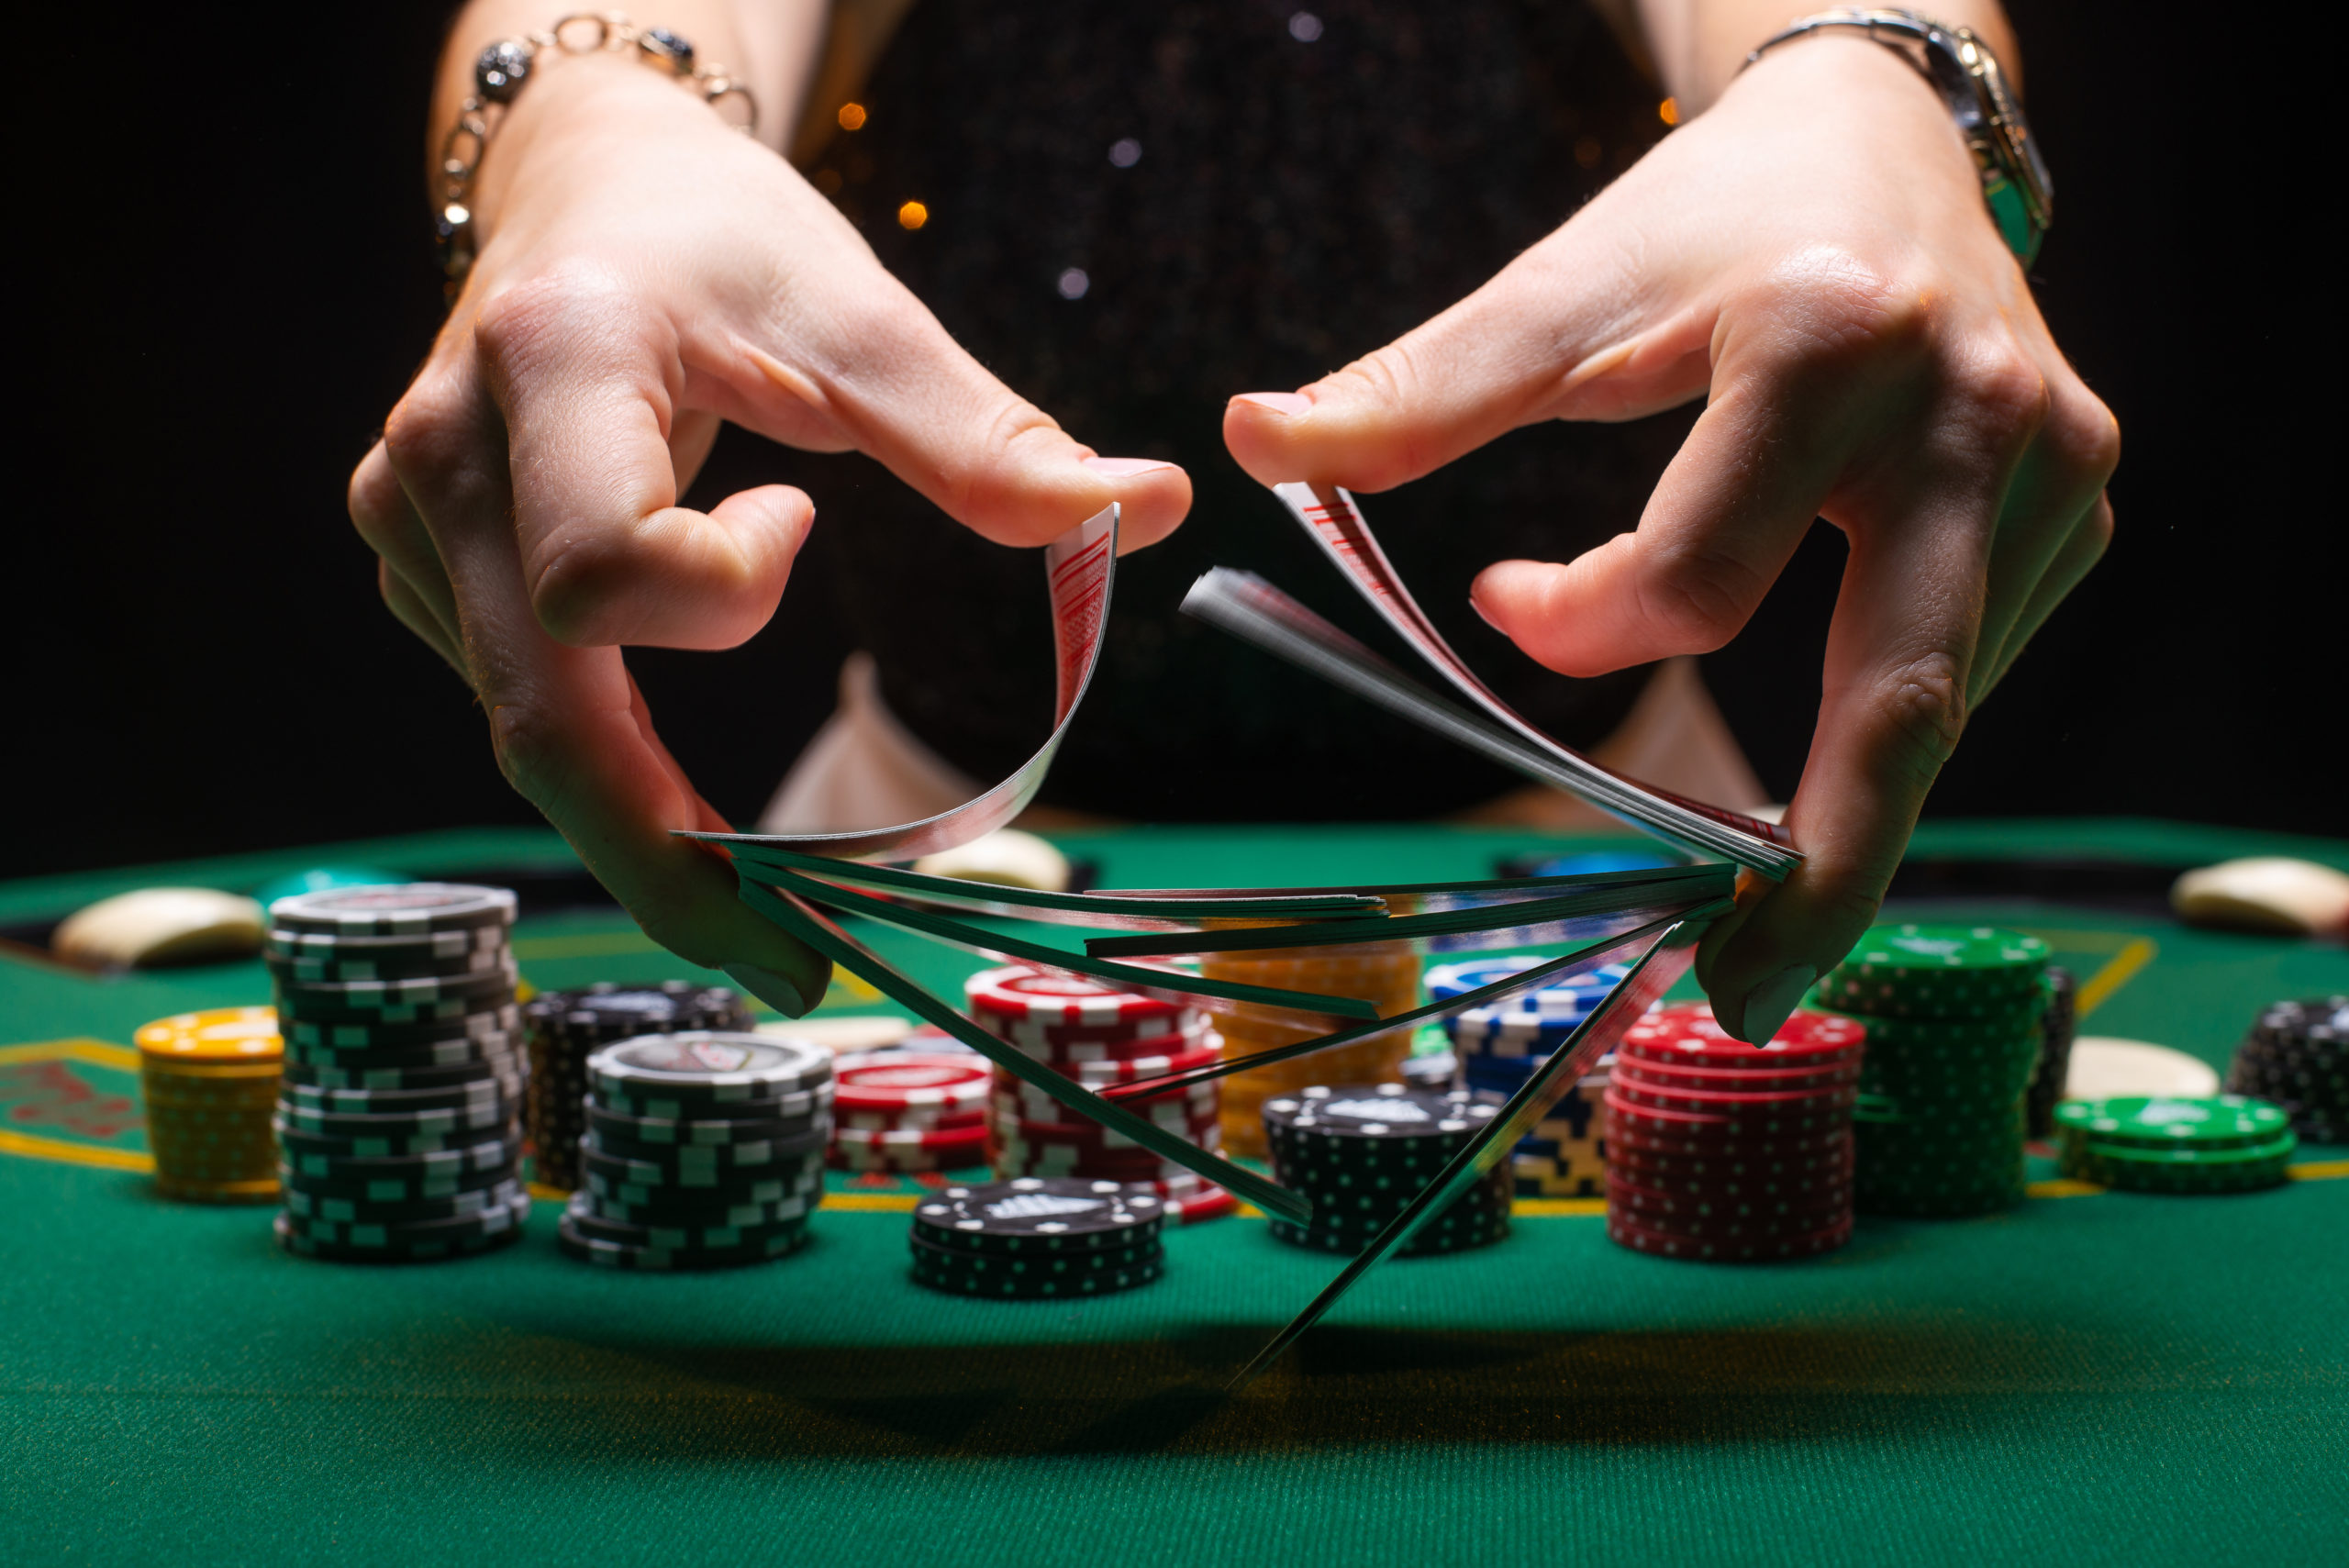 Poker and Women: The Secret in Their Eyes